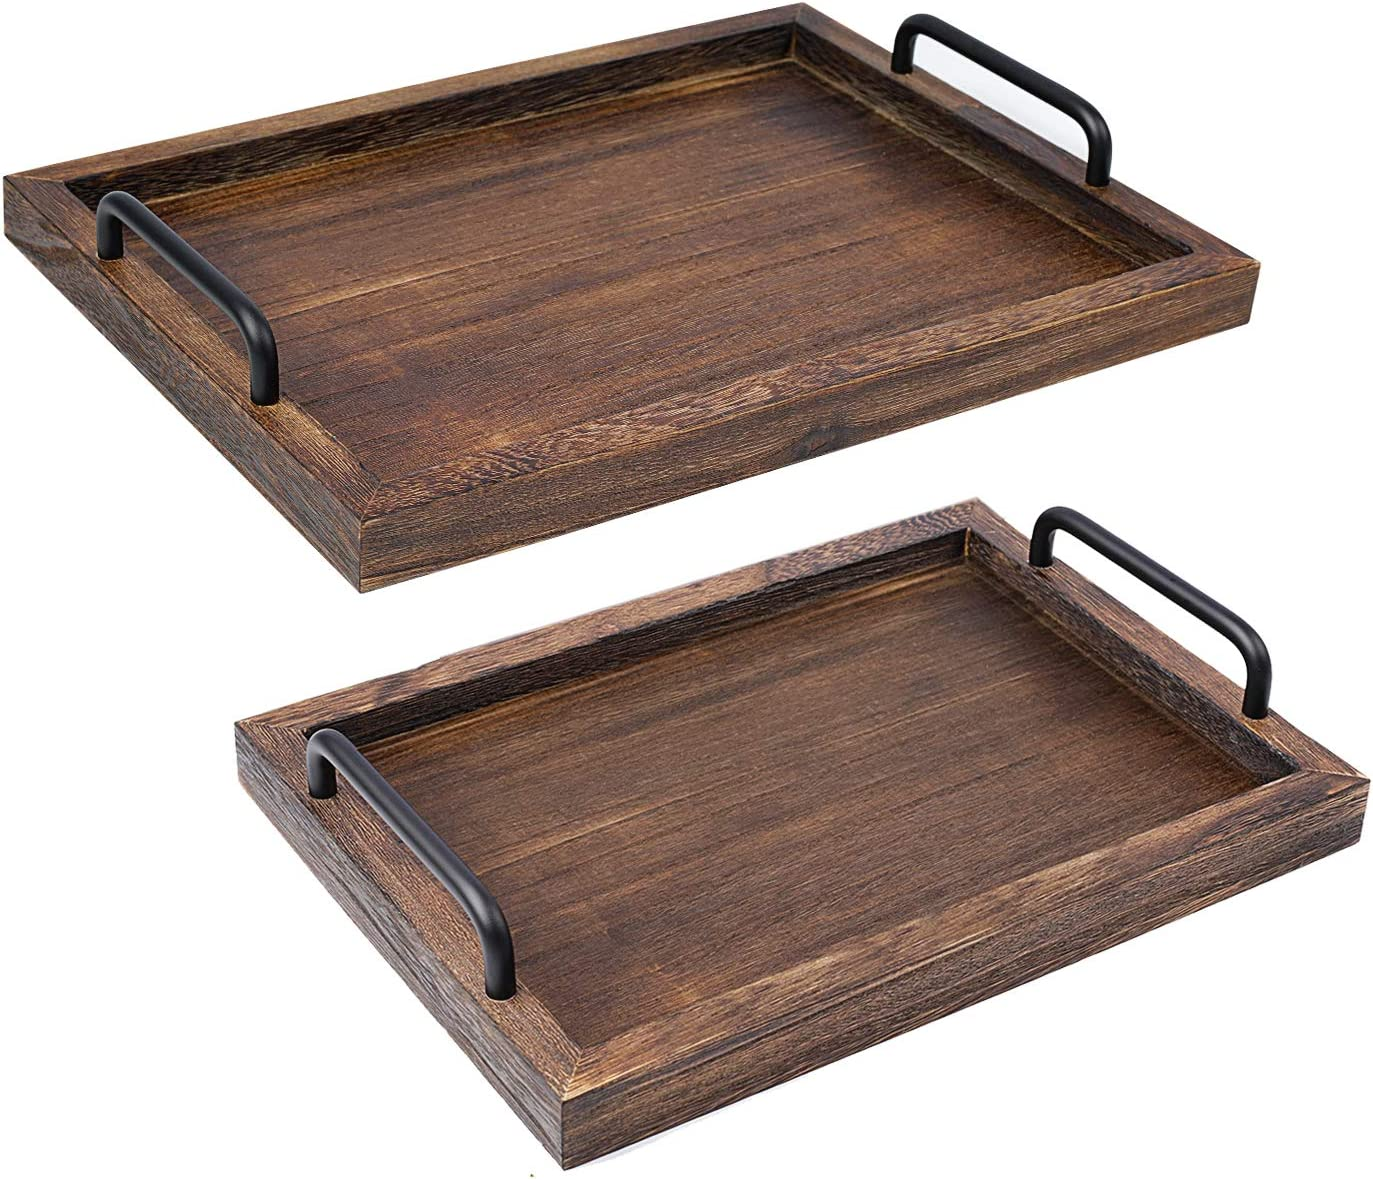 LIBWYS Superior supreme Rustic Wooden Serving Trays with Nesti Decorative Handle